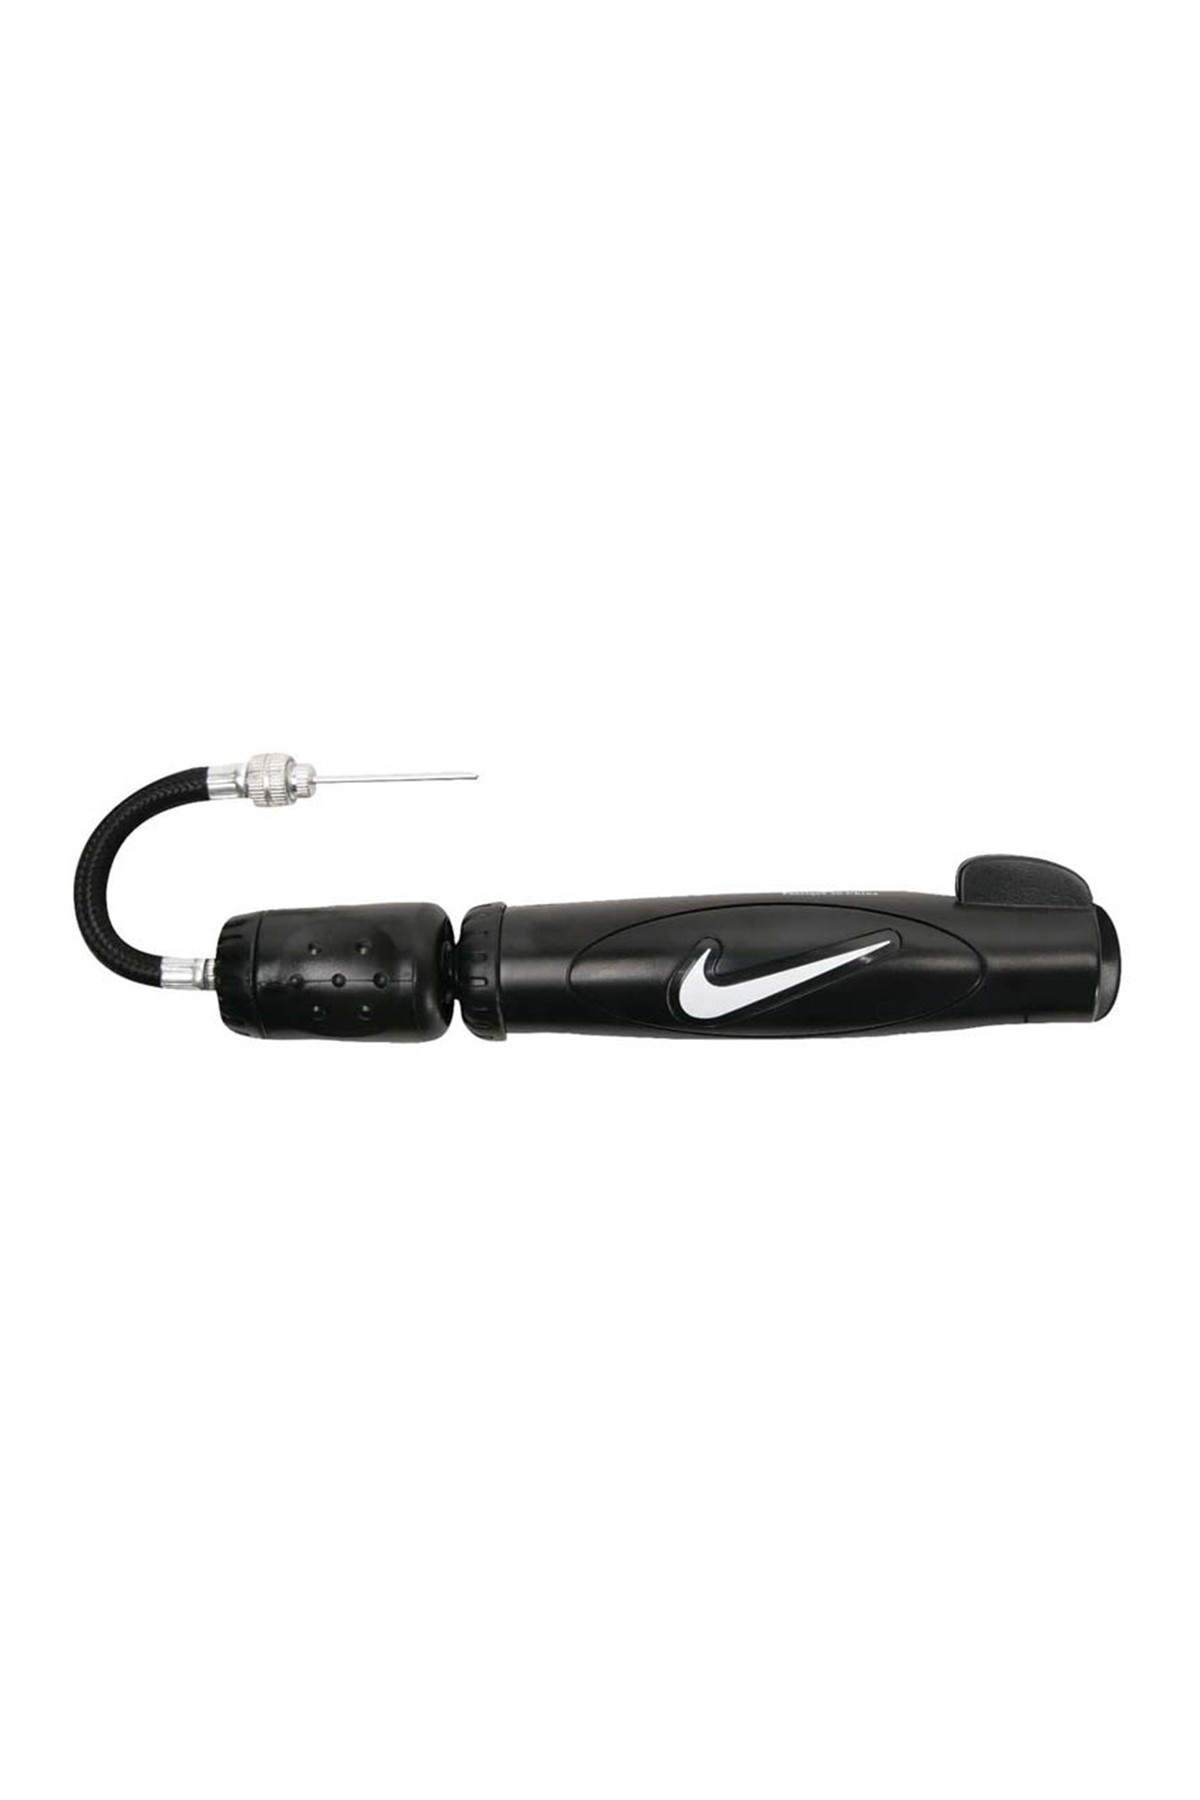 Nike  Ball Pump Unisex Pompa  9.038.023.001.std  89.9 TL